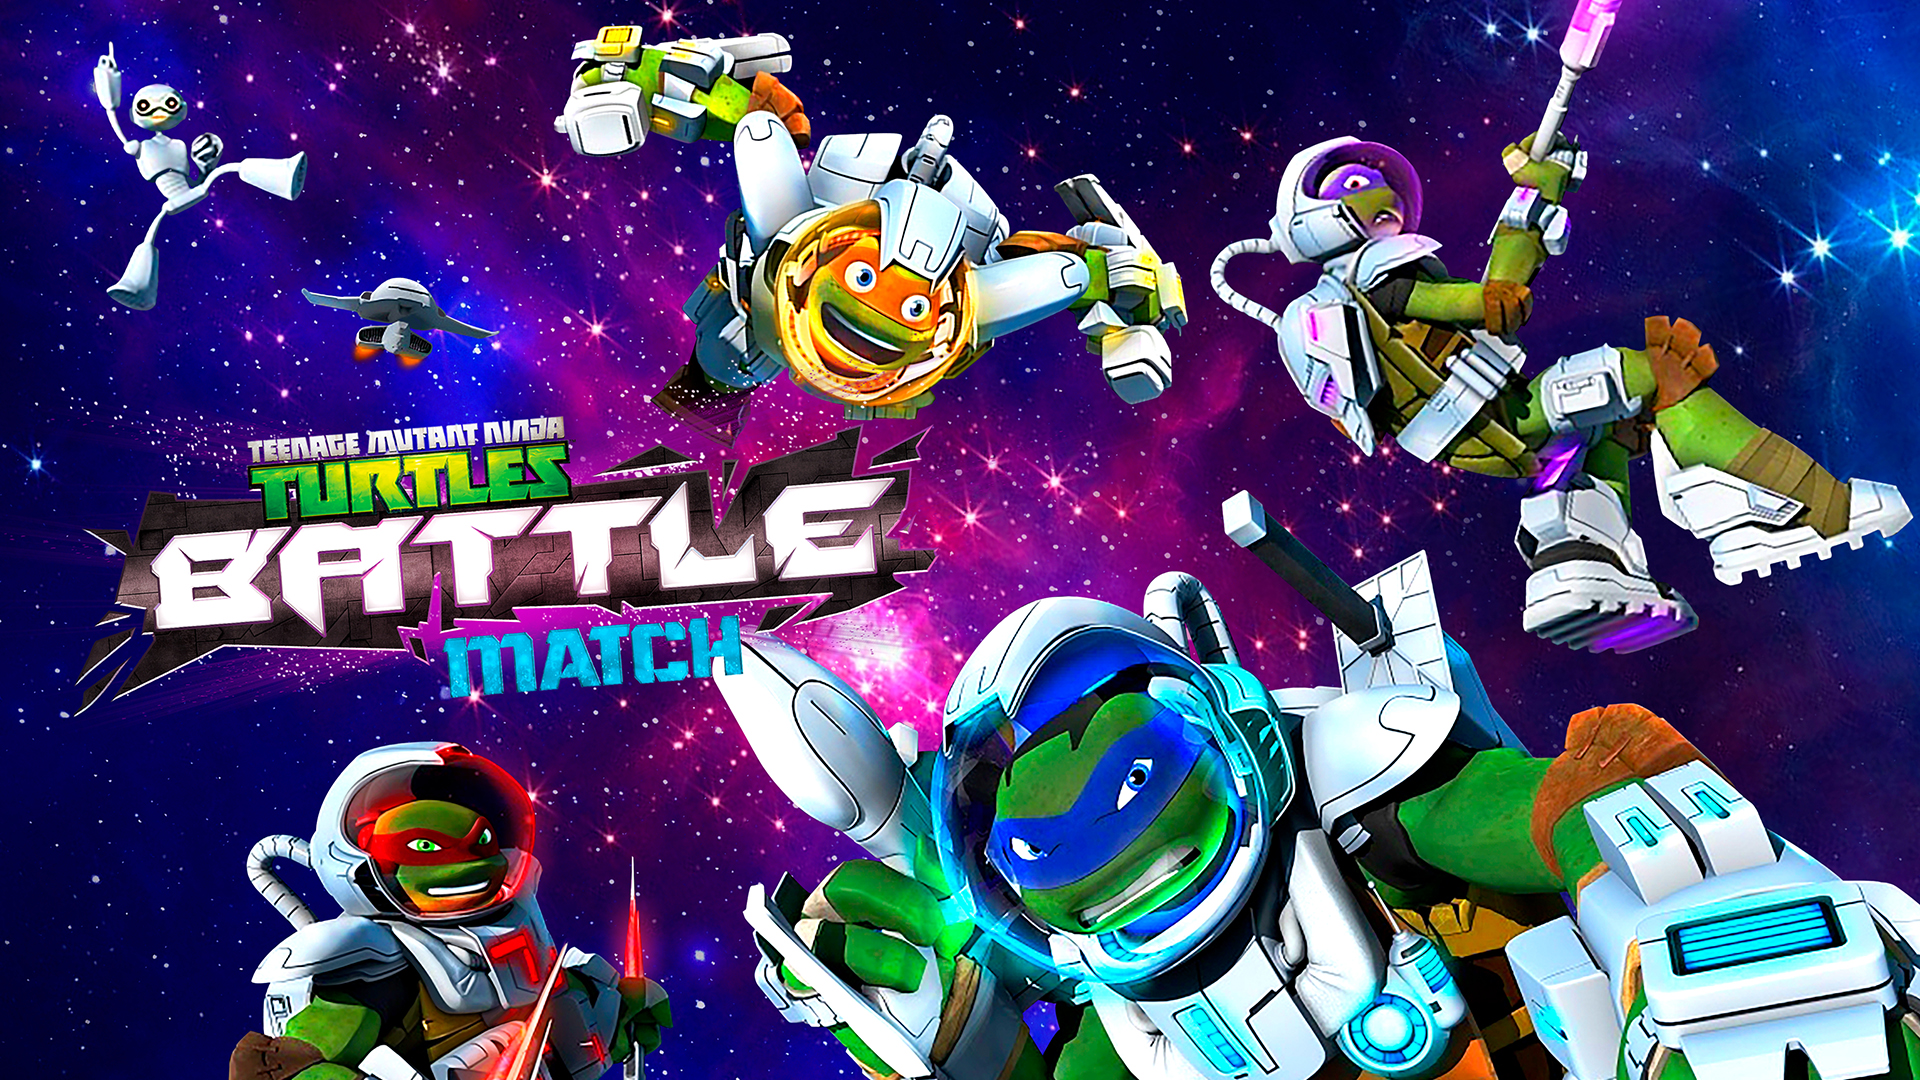 Teenage Mutant Ninja Turtles: Battle Match